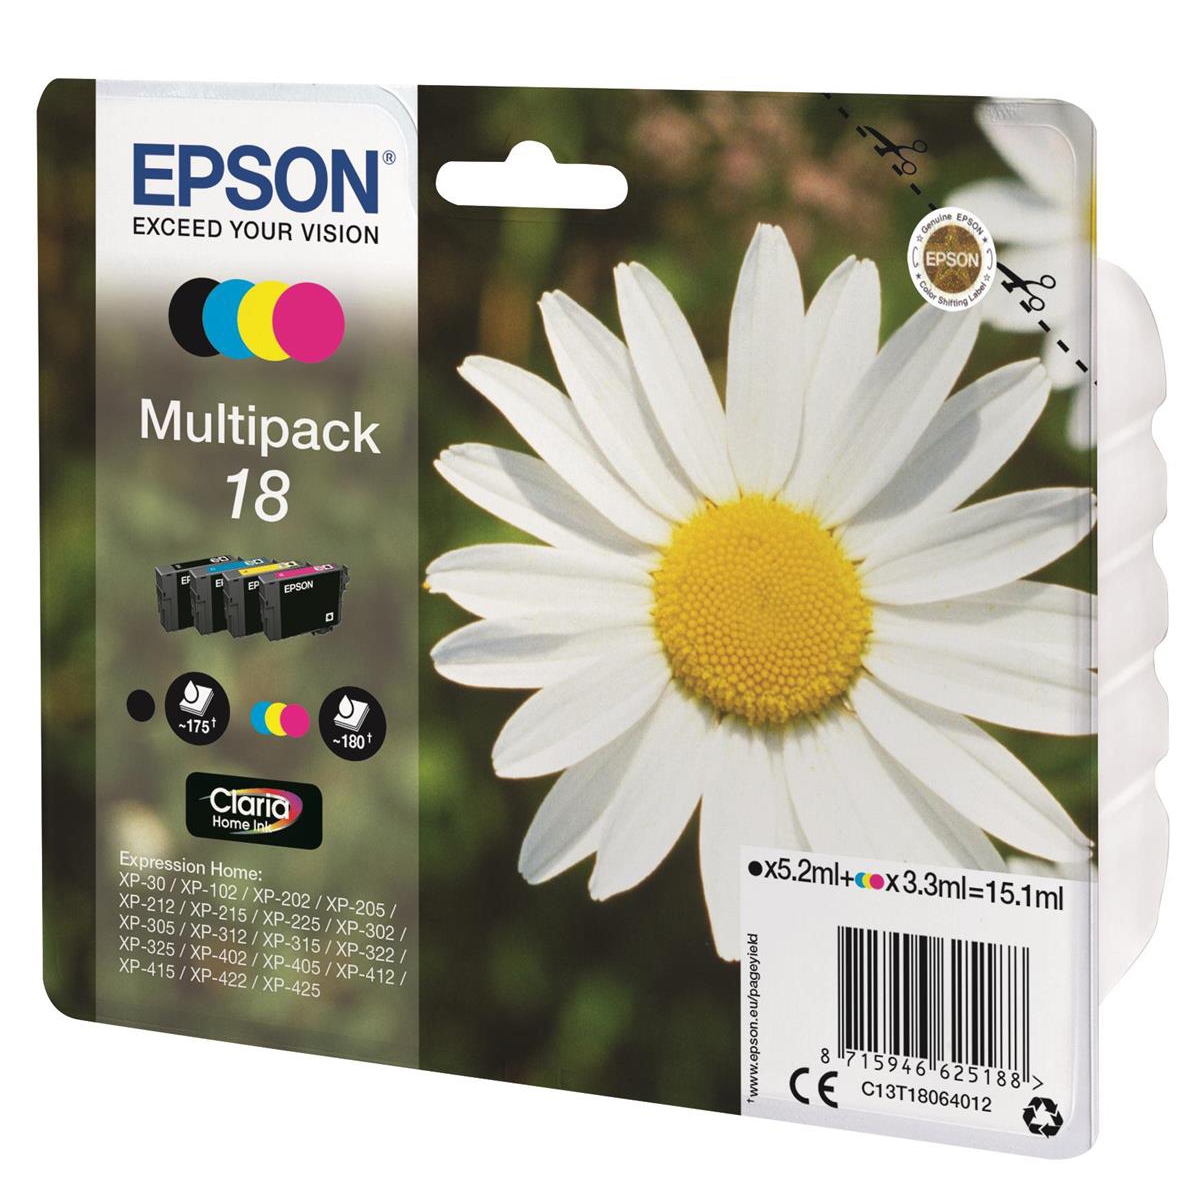 Epson 18 Inkjet Cartridges Daisy Black 5.3ml Cyan/Magenta/Yellow 3.3ml Ref C13T18064012 [Pack 4]